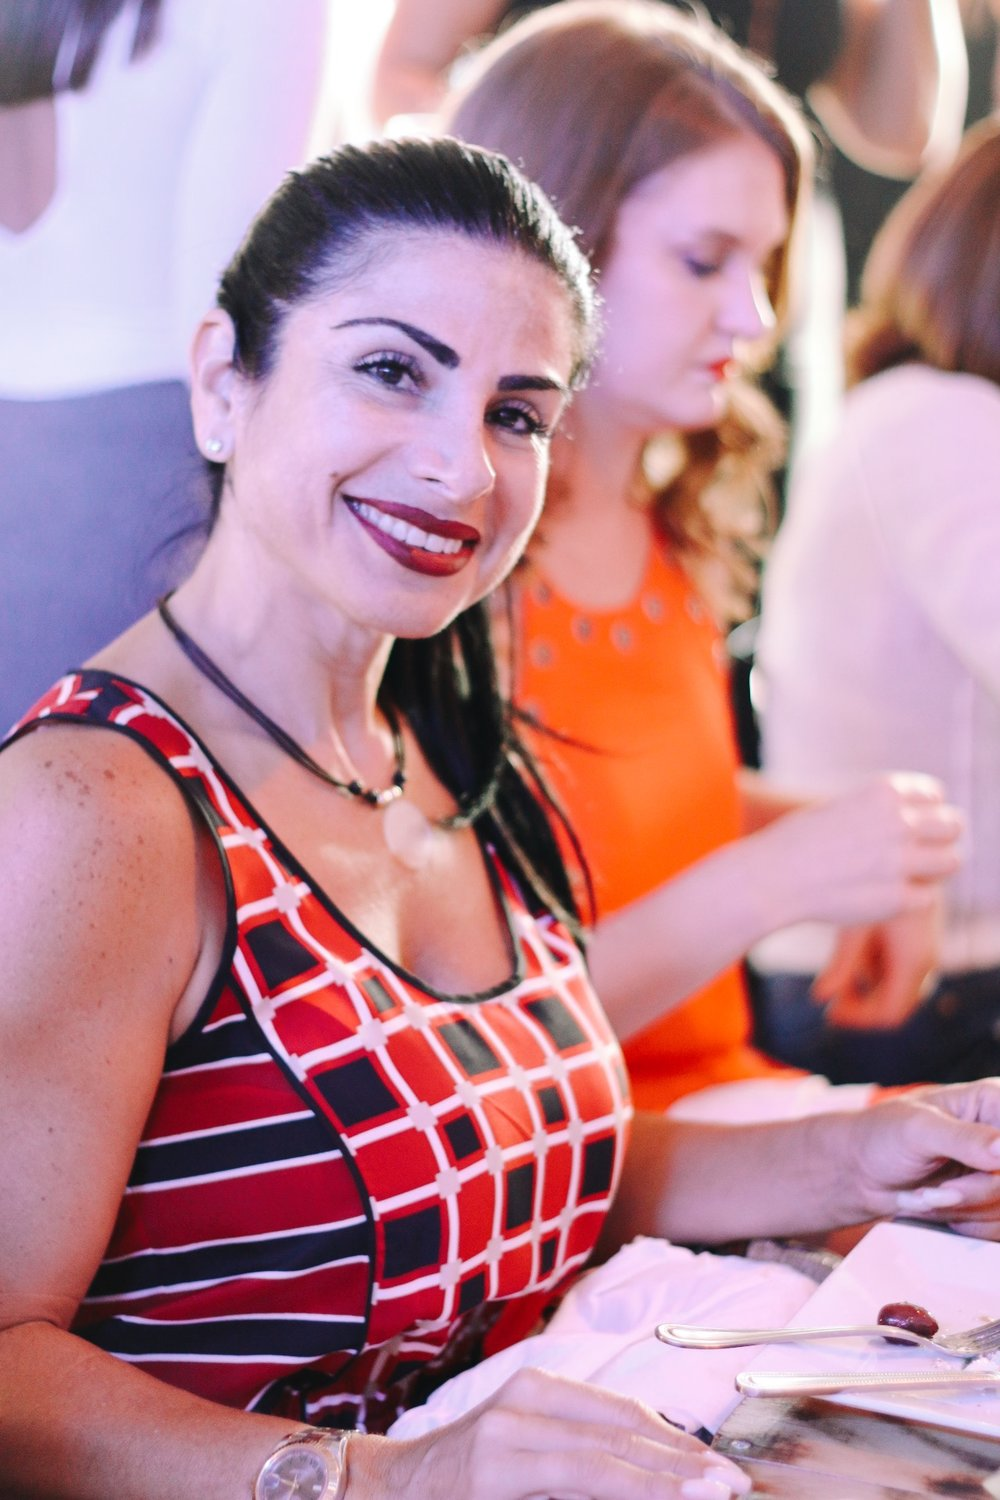 Women Who Wine-Uncorked Conversations-Eat Greek-Miami Wine Events-Wine Tasting Miami-24.jpg